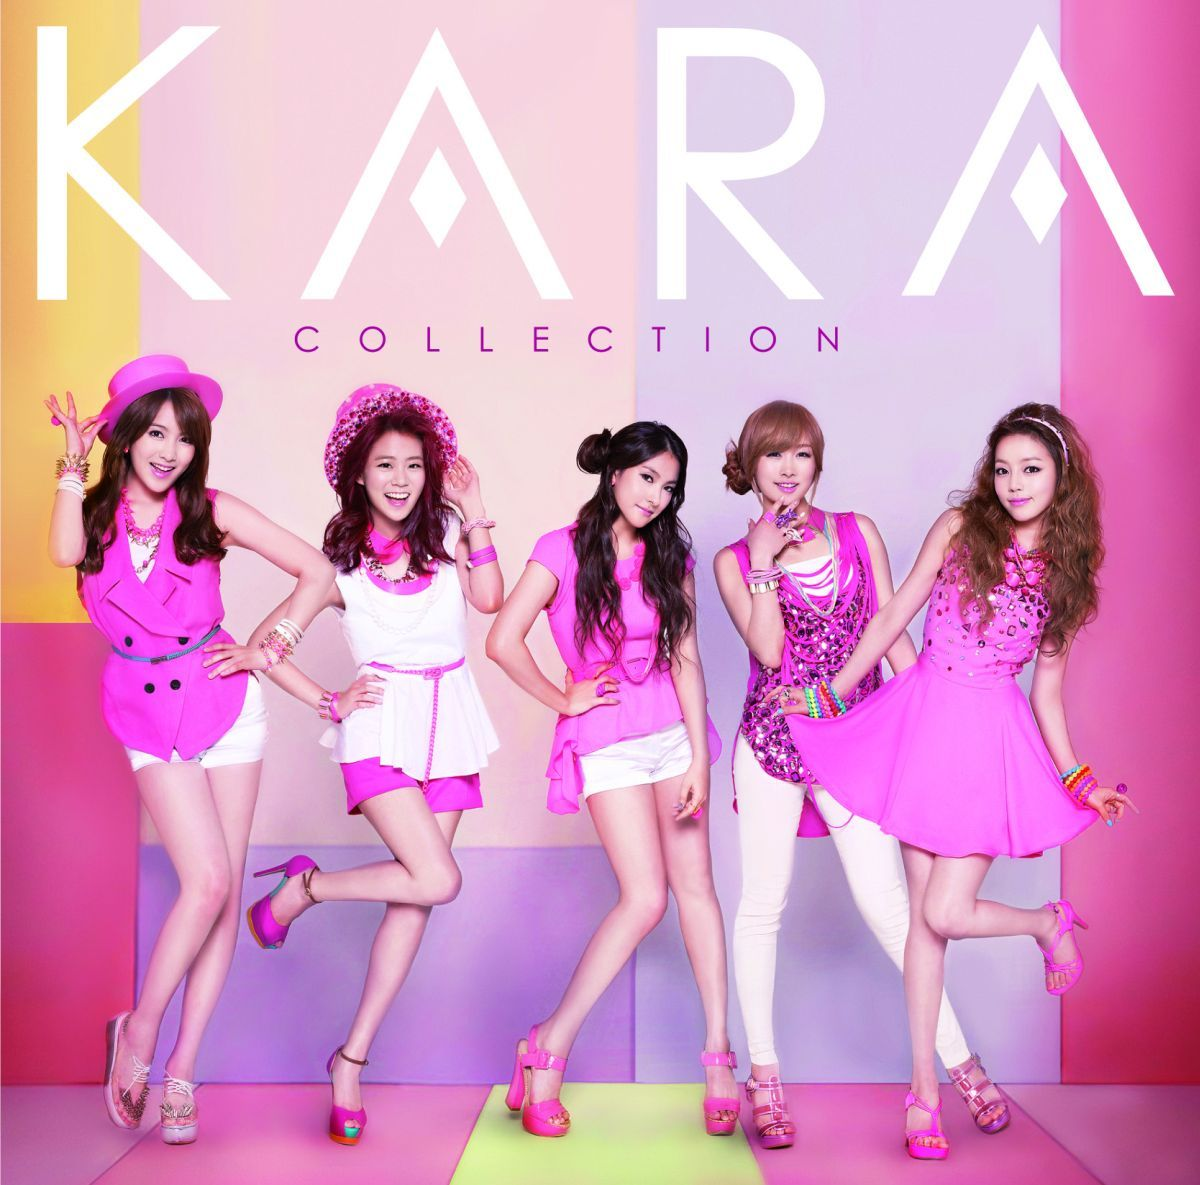 Kara S Collection